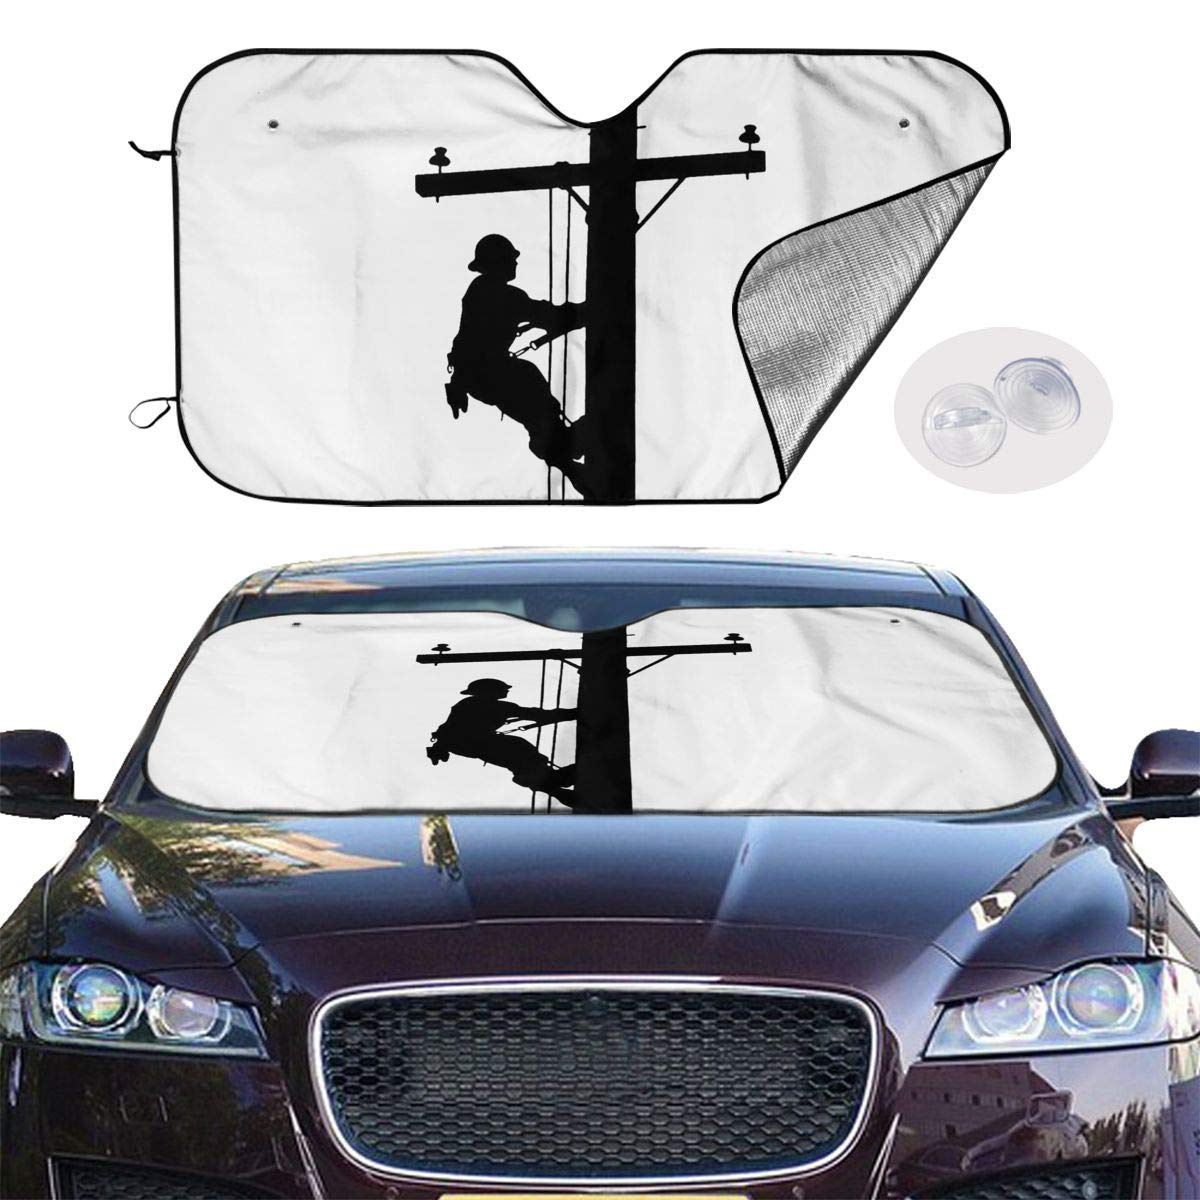 Laxoinh Lineman On A Pole Statue Car Foldable UV Ray Reflector Auto Front Window Sun Shade Visor Shield Cover